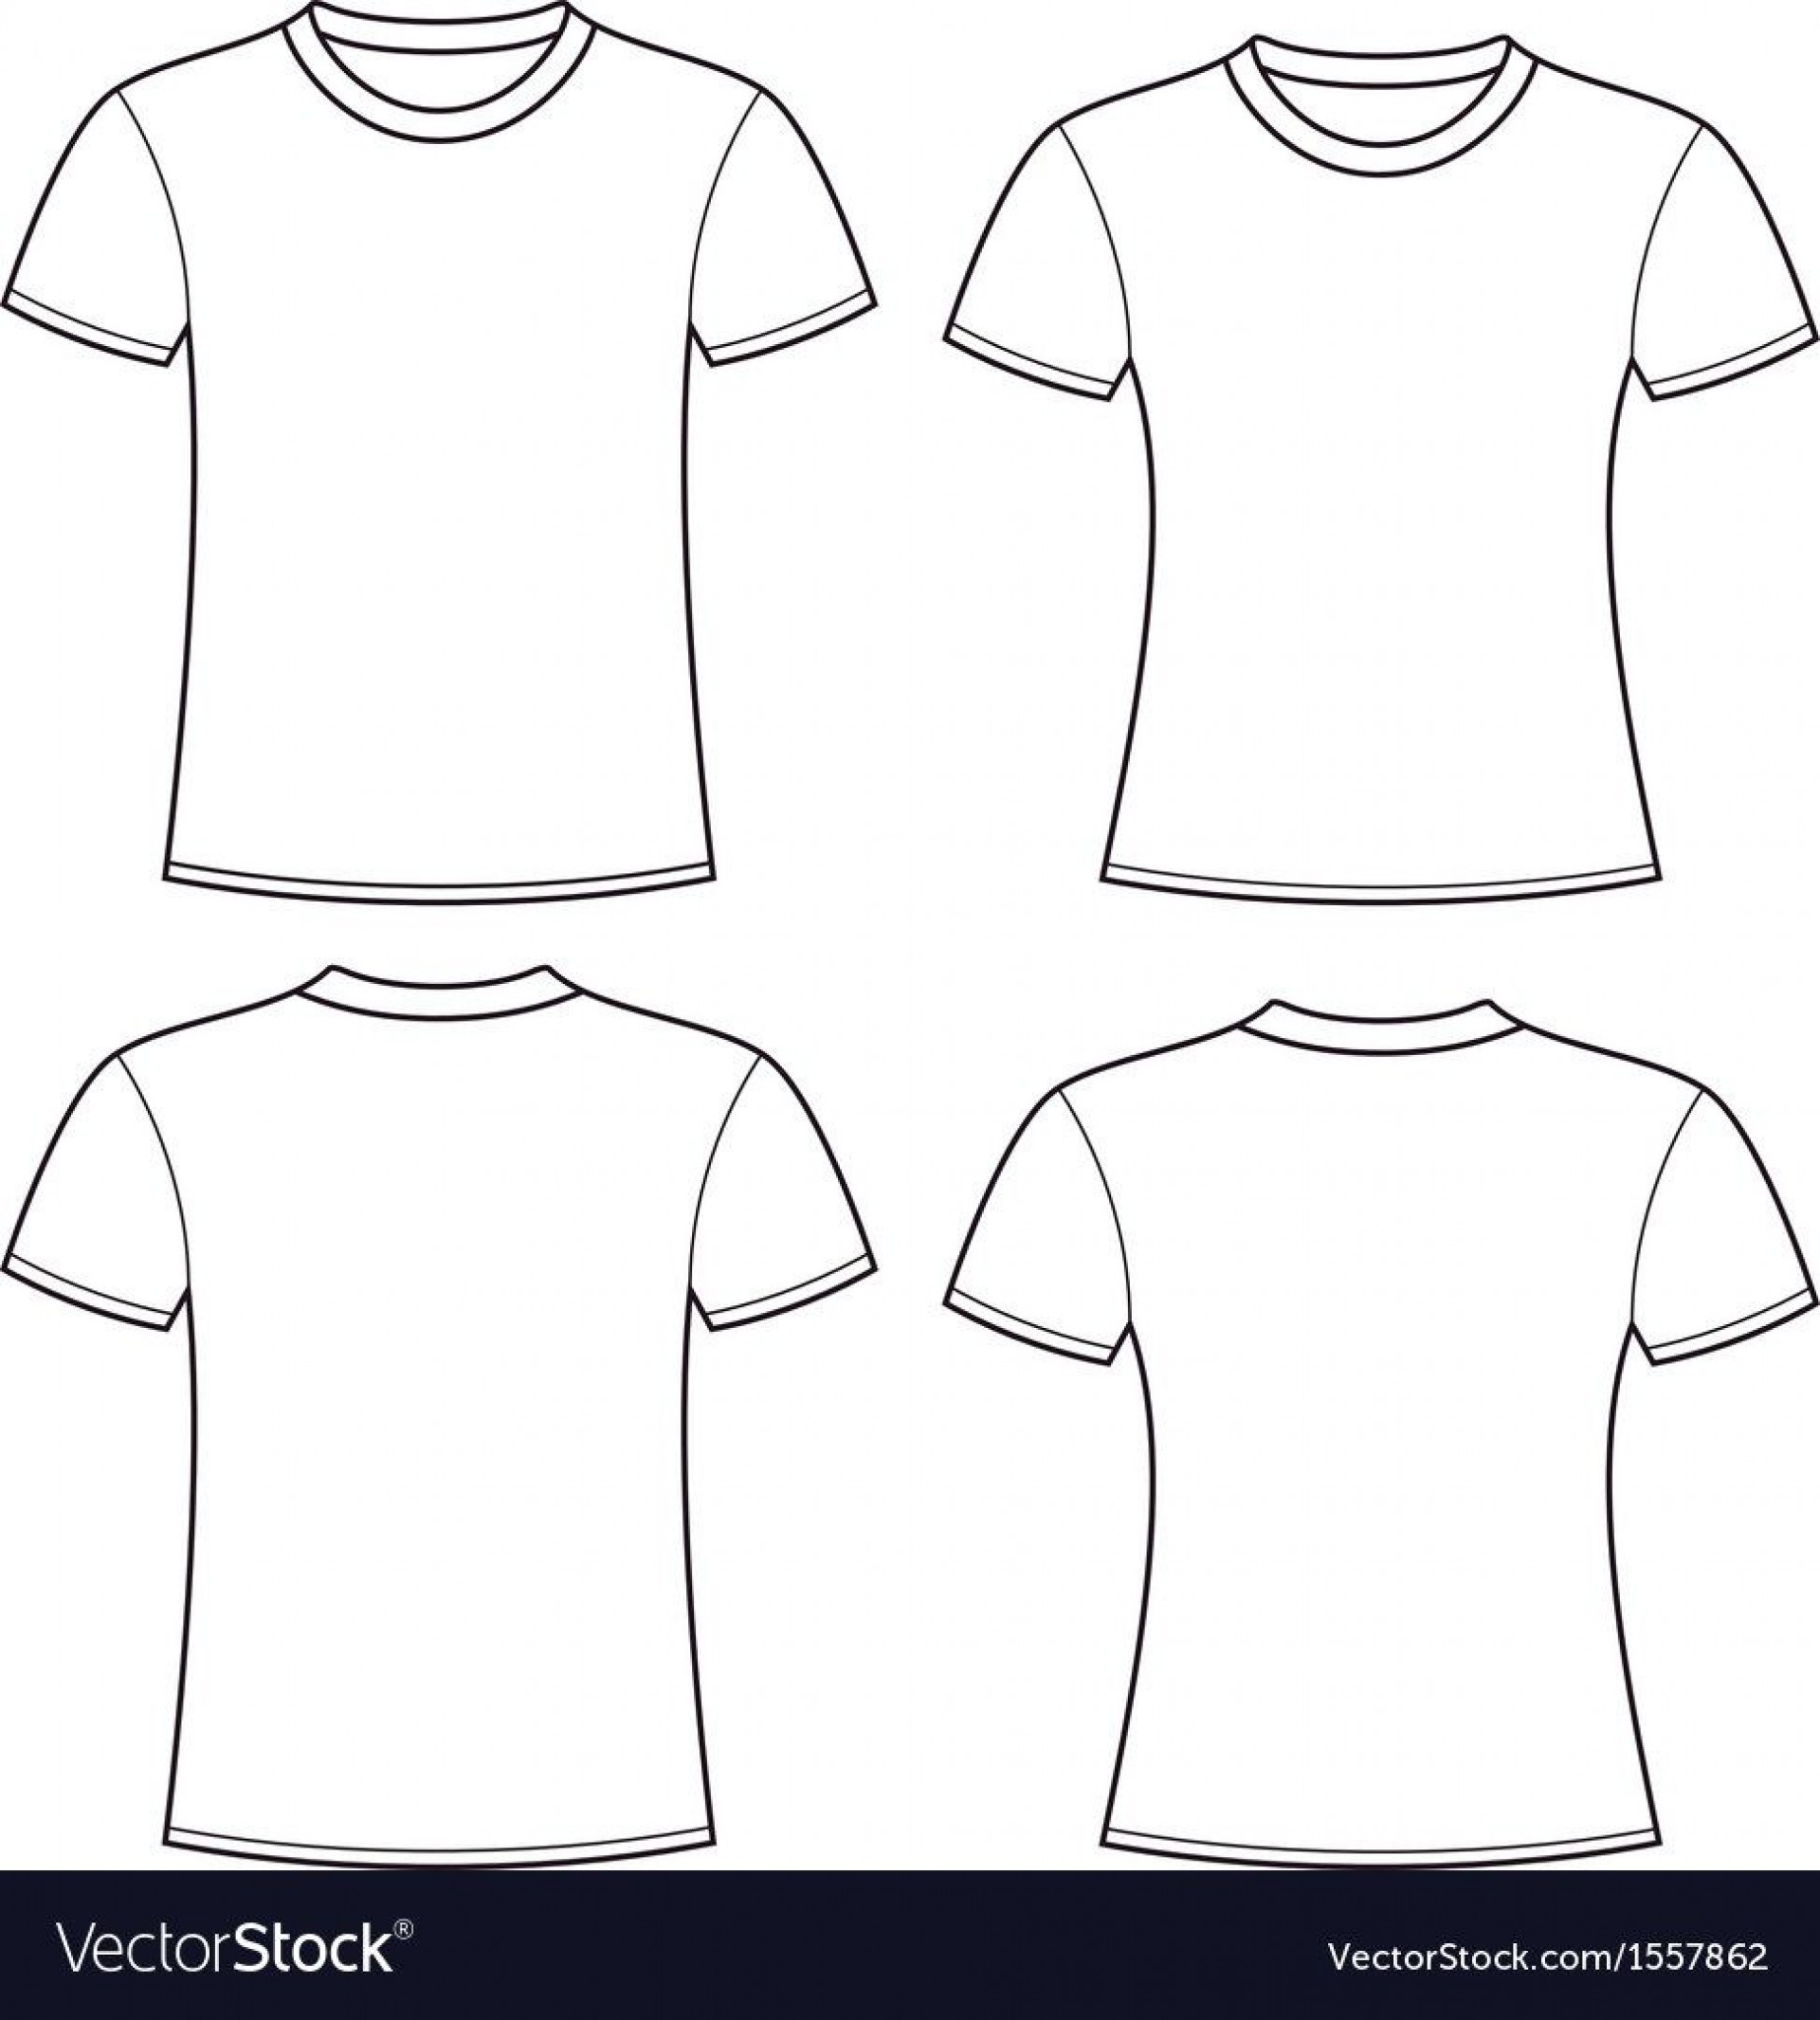 005 Rare Plain T Shirt Template Picture  Blank Front And Back1920